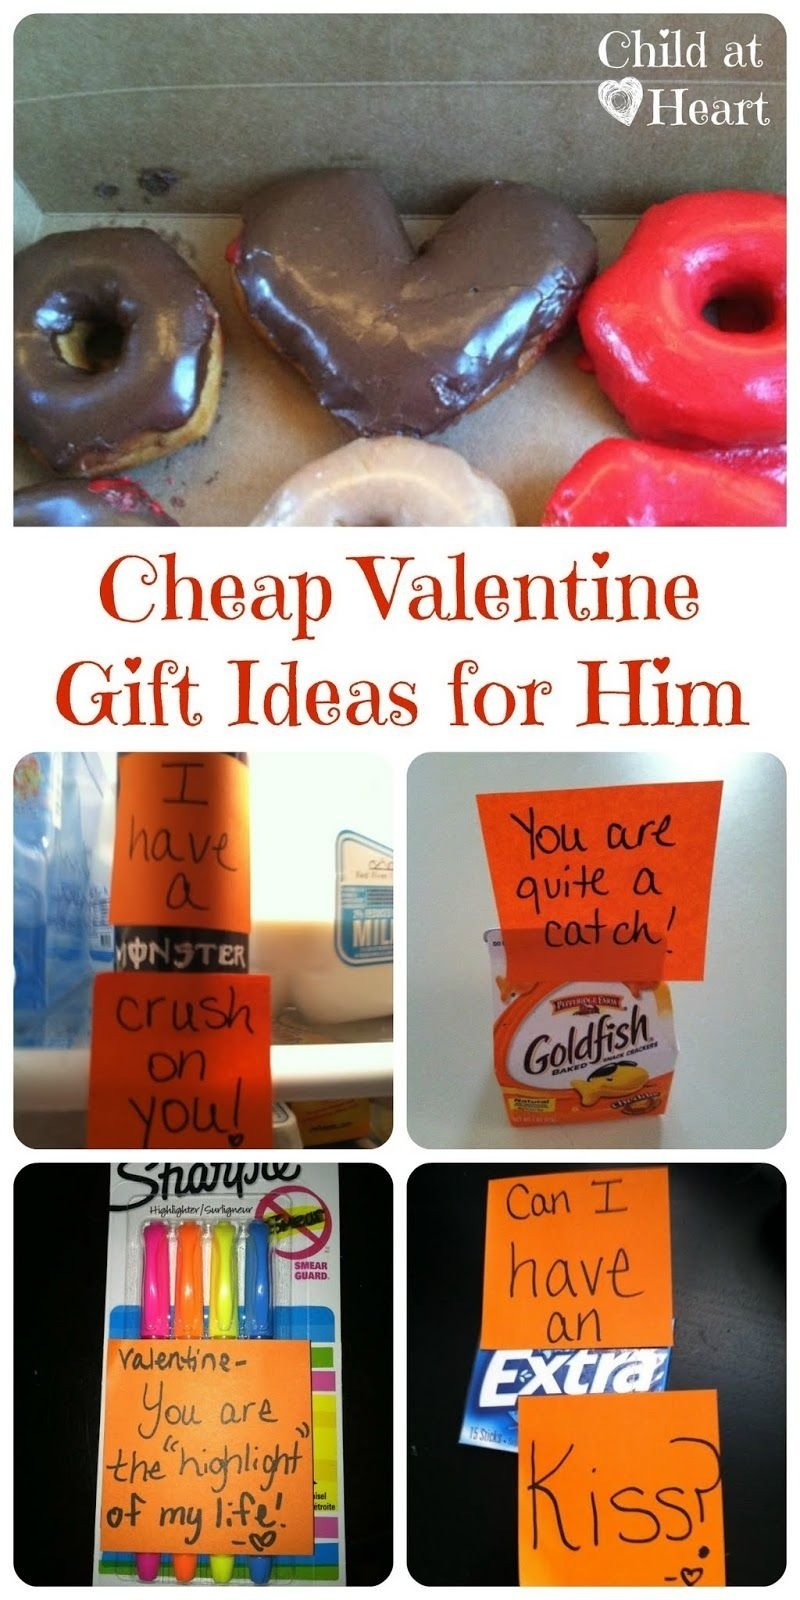 10 Lovable Small Gift Ideas For Boyfriend cheap valentine gift ideas for him child gift and holidays 1 2020